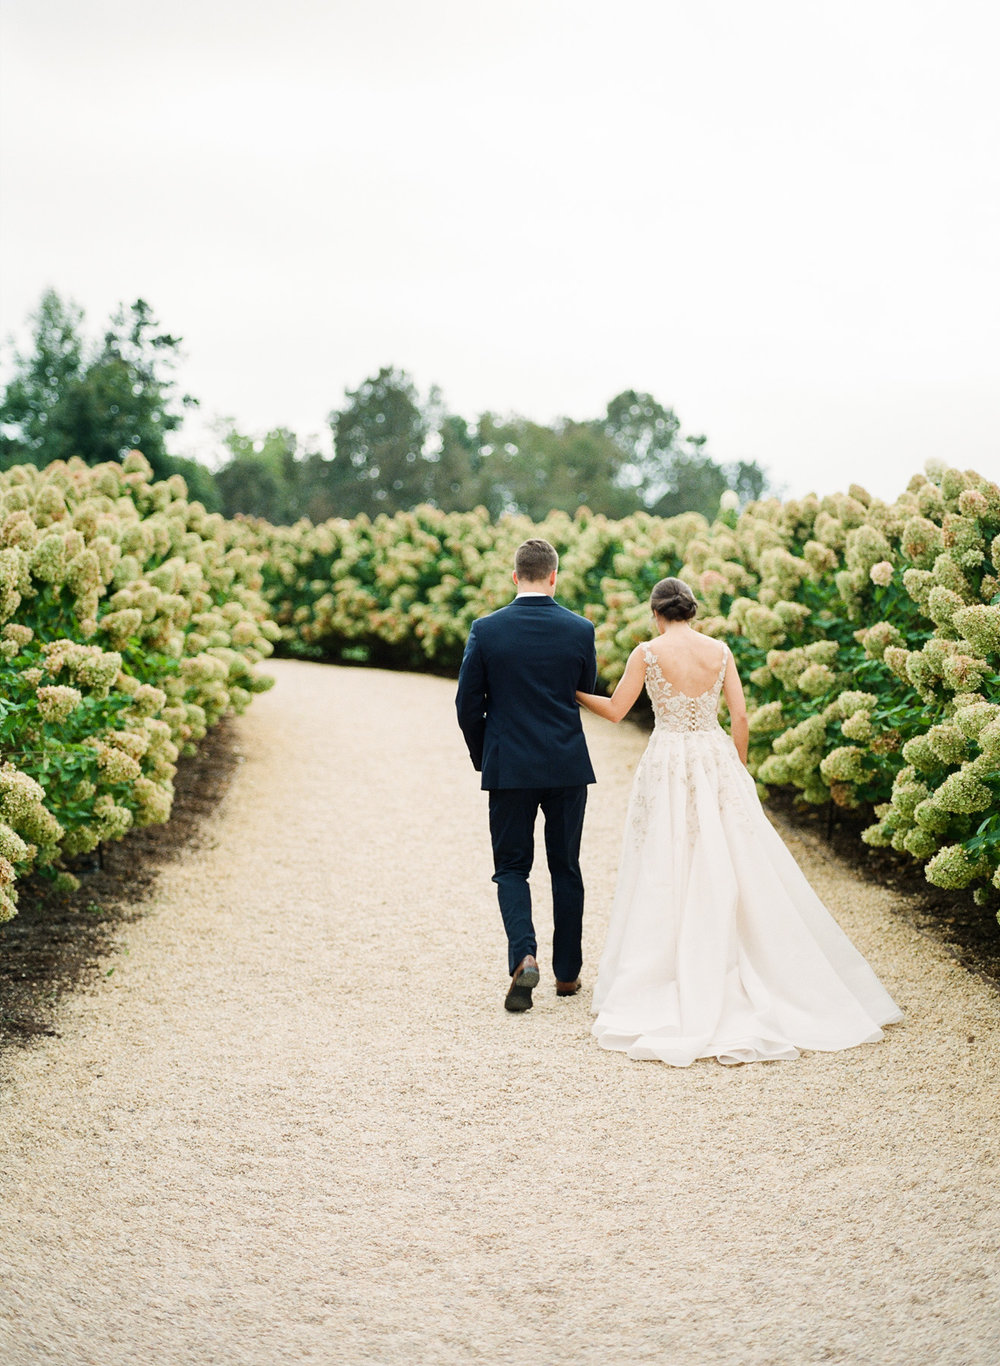 Pippin-Hill-Farm-and-Vinyards-Wedding-Film-Photography-56.jpg